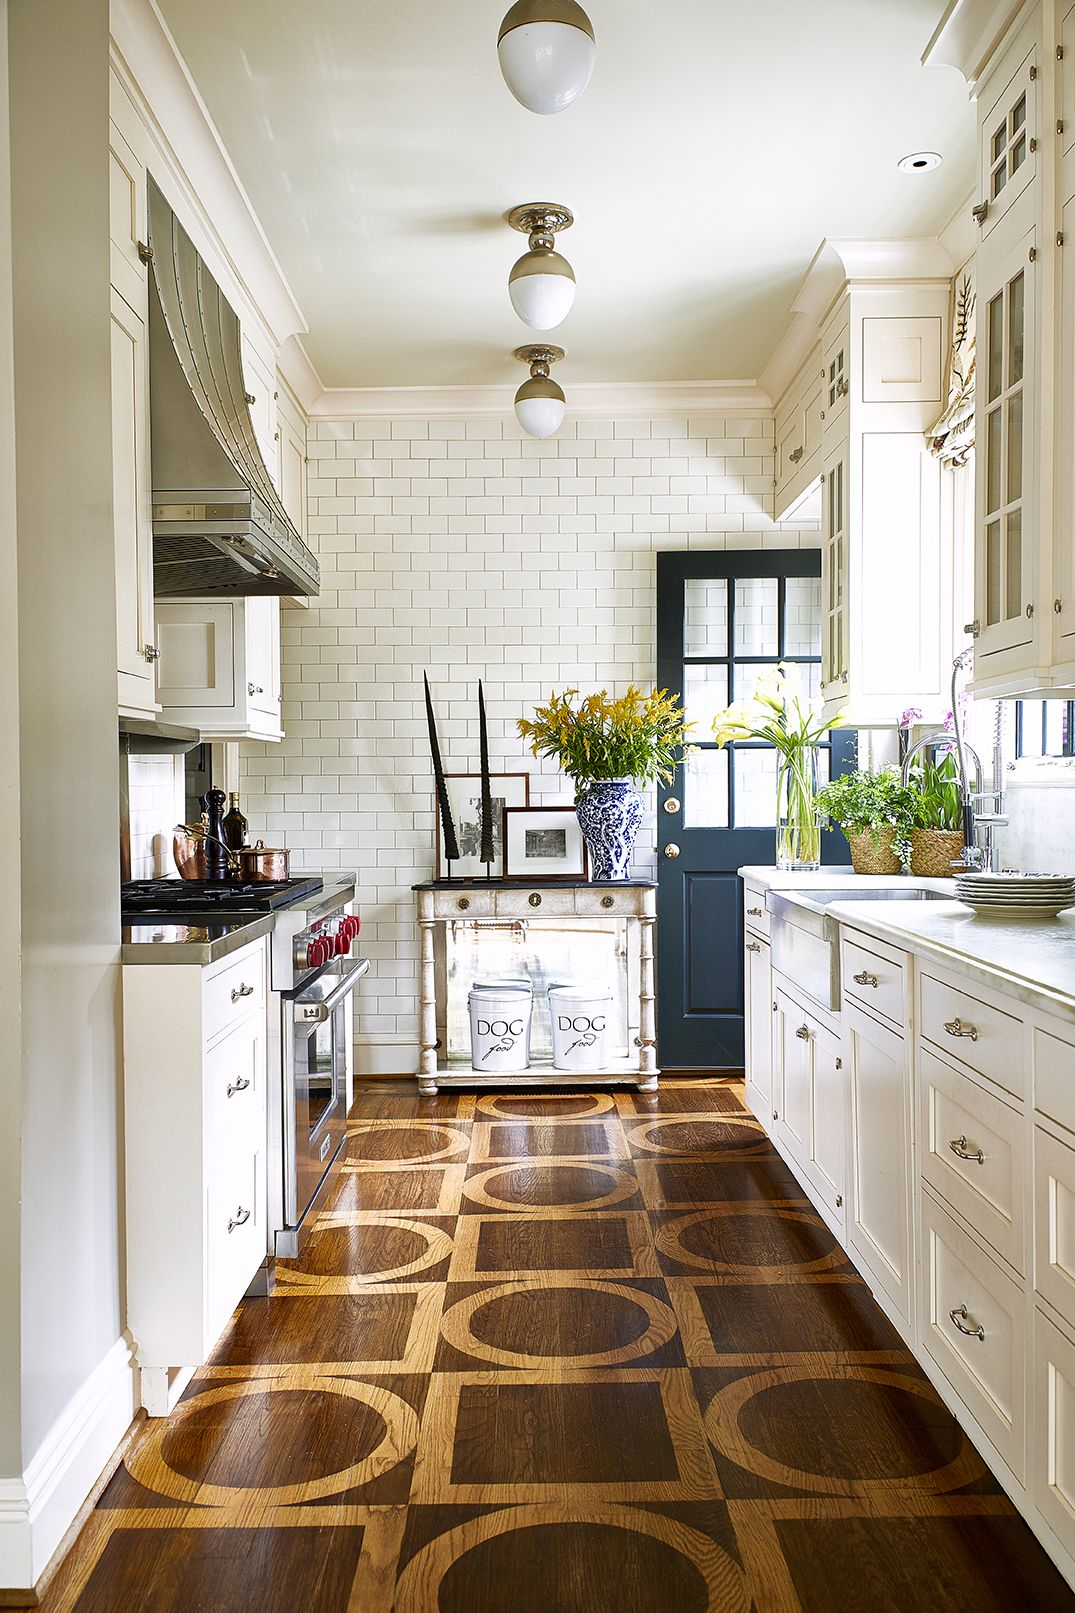 French Country Flooring : french, country, flooring, French, Country, Kitchens, Farmhouse, Kitchen, Style, Inspiration